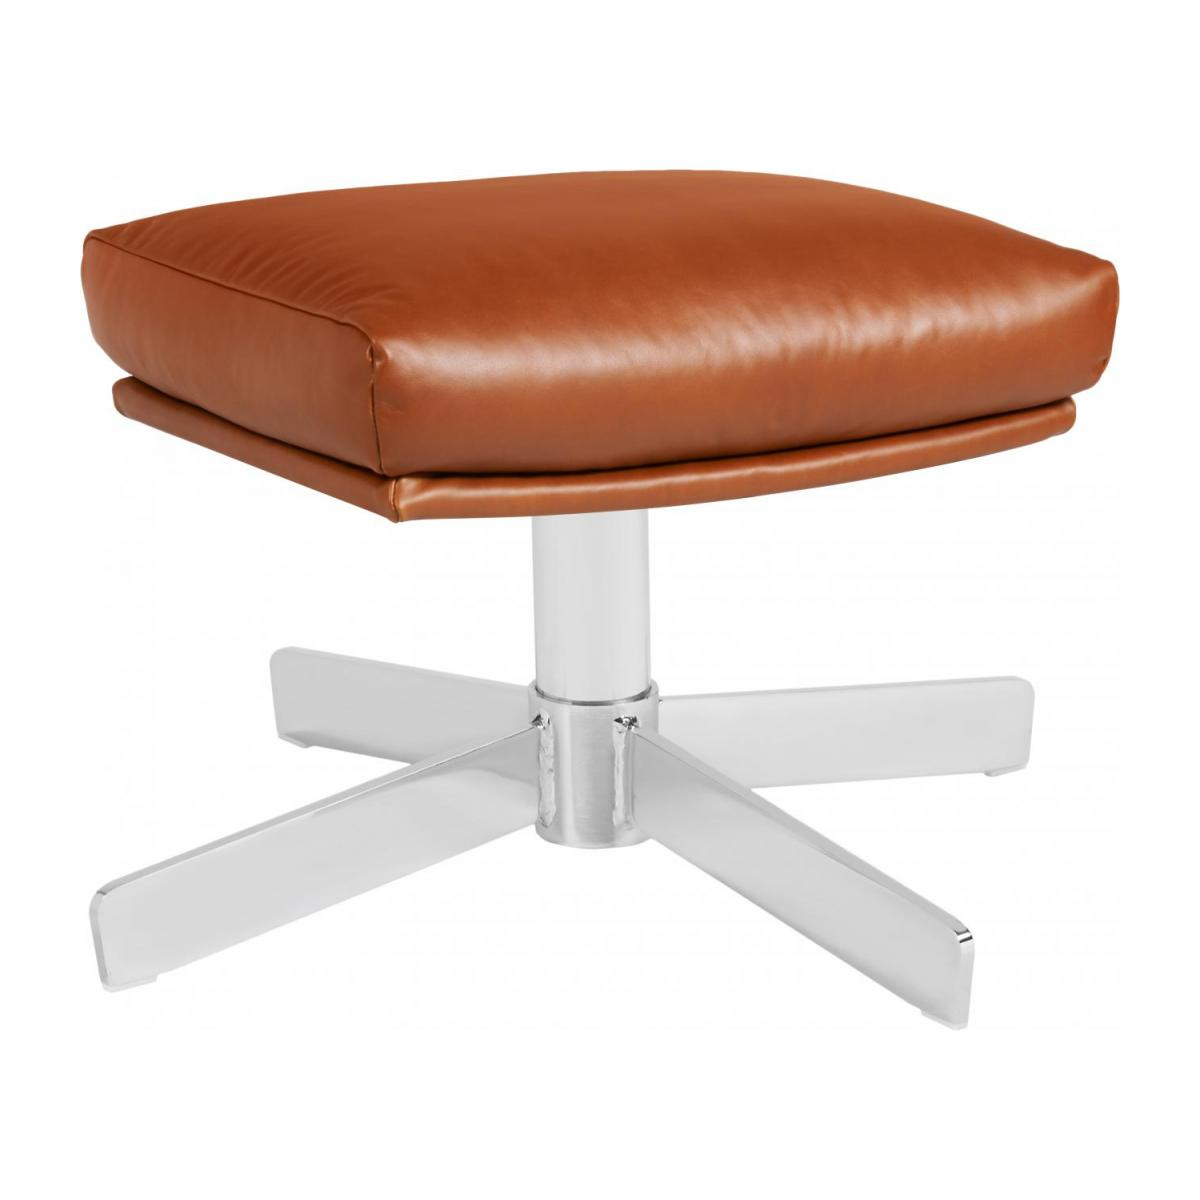 Remarkable Footstool In Aniline Vintage Leather Old Chestnut With Metal Cross Leg Short Links Chair Design For Home Short Linksinfo